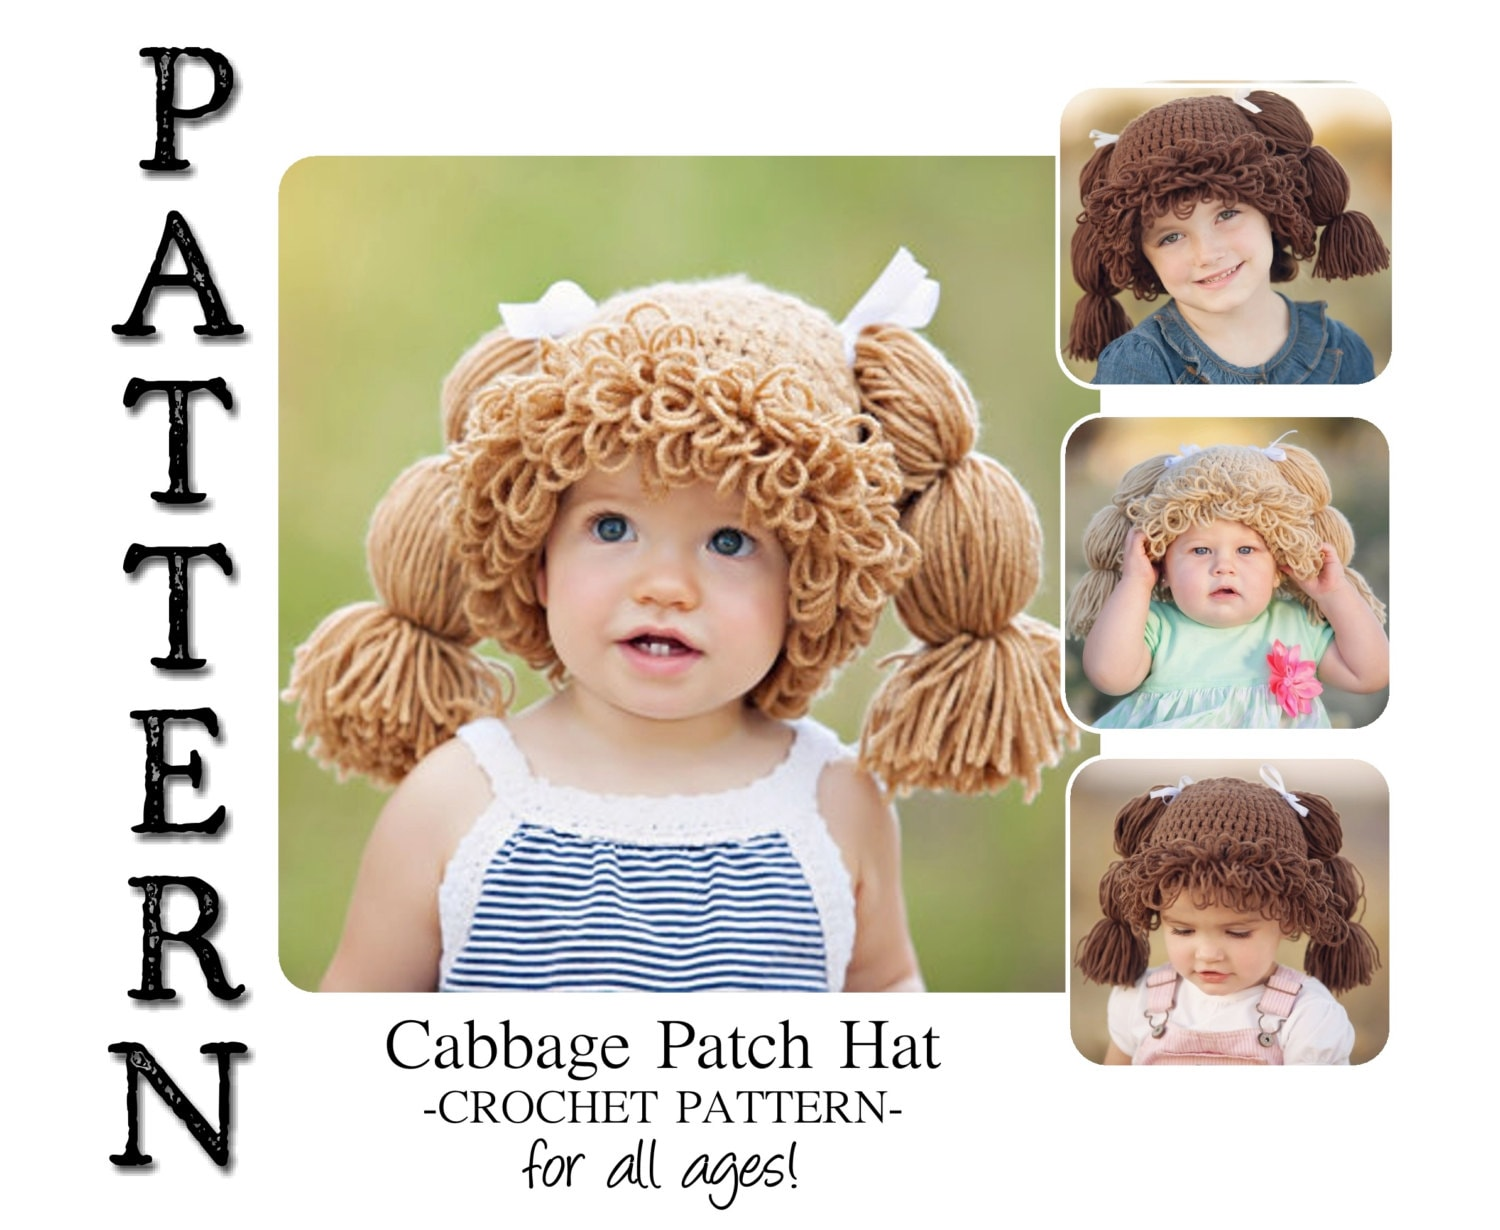 PATTERN-- Cabbage Patch Crochet Hat for All Ages! from BurlyBeardco ...